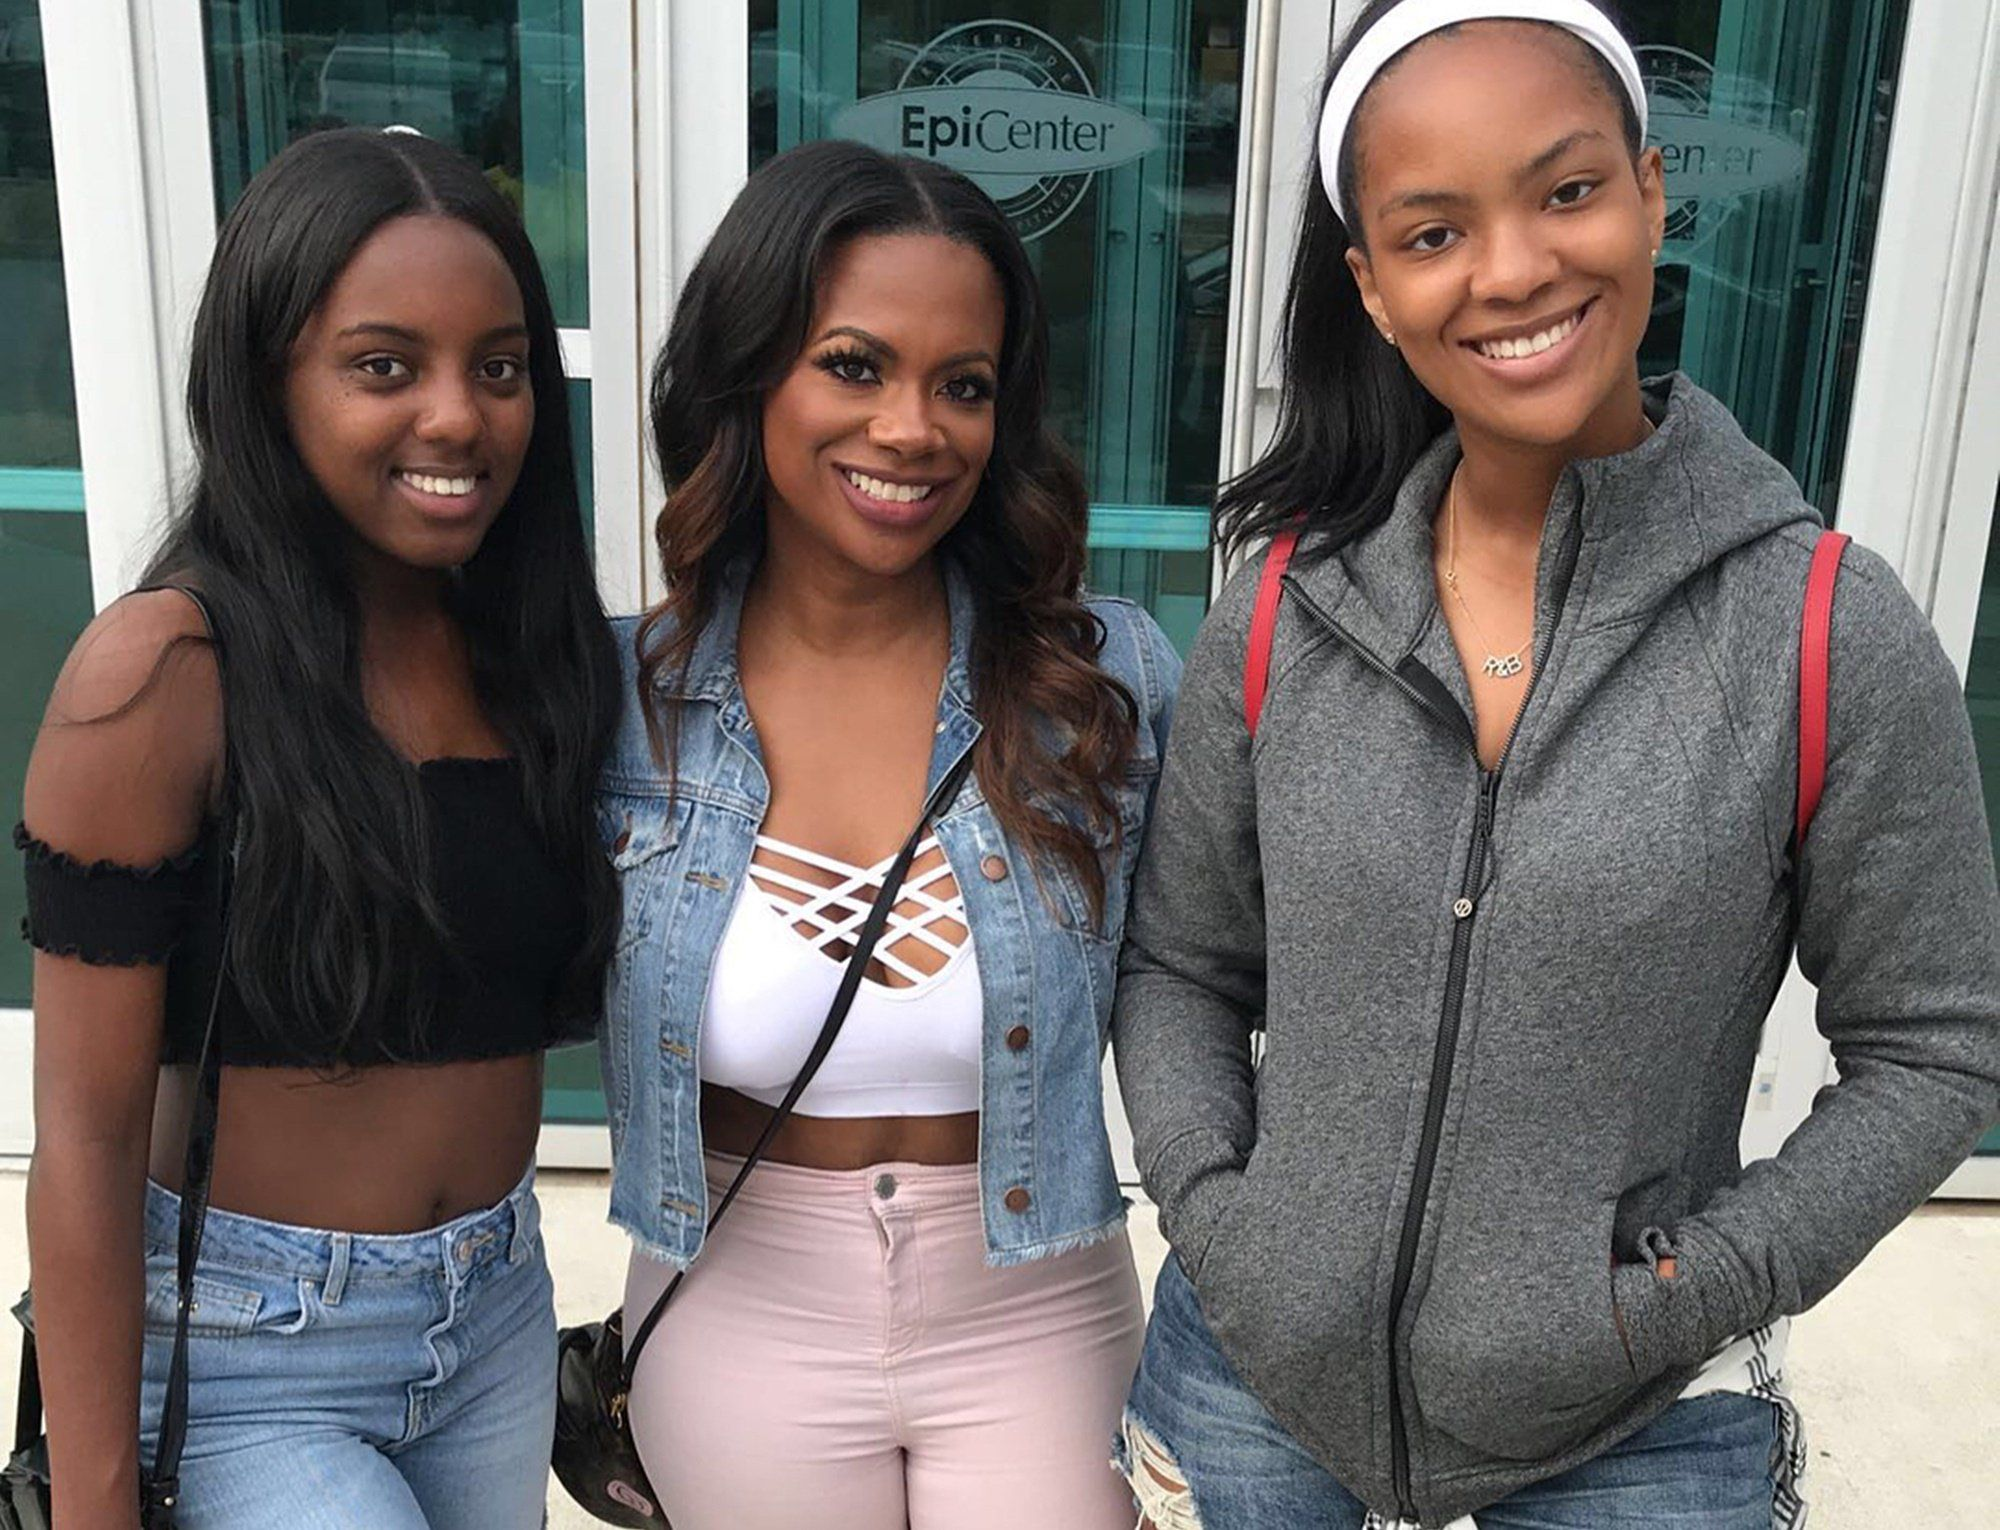 """kandi-burruss-makes-fans-happy-with-these-photos-featuring-riley-burruss"""